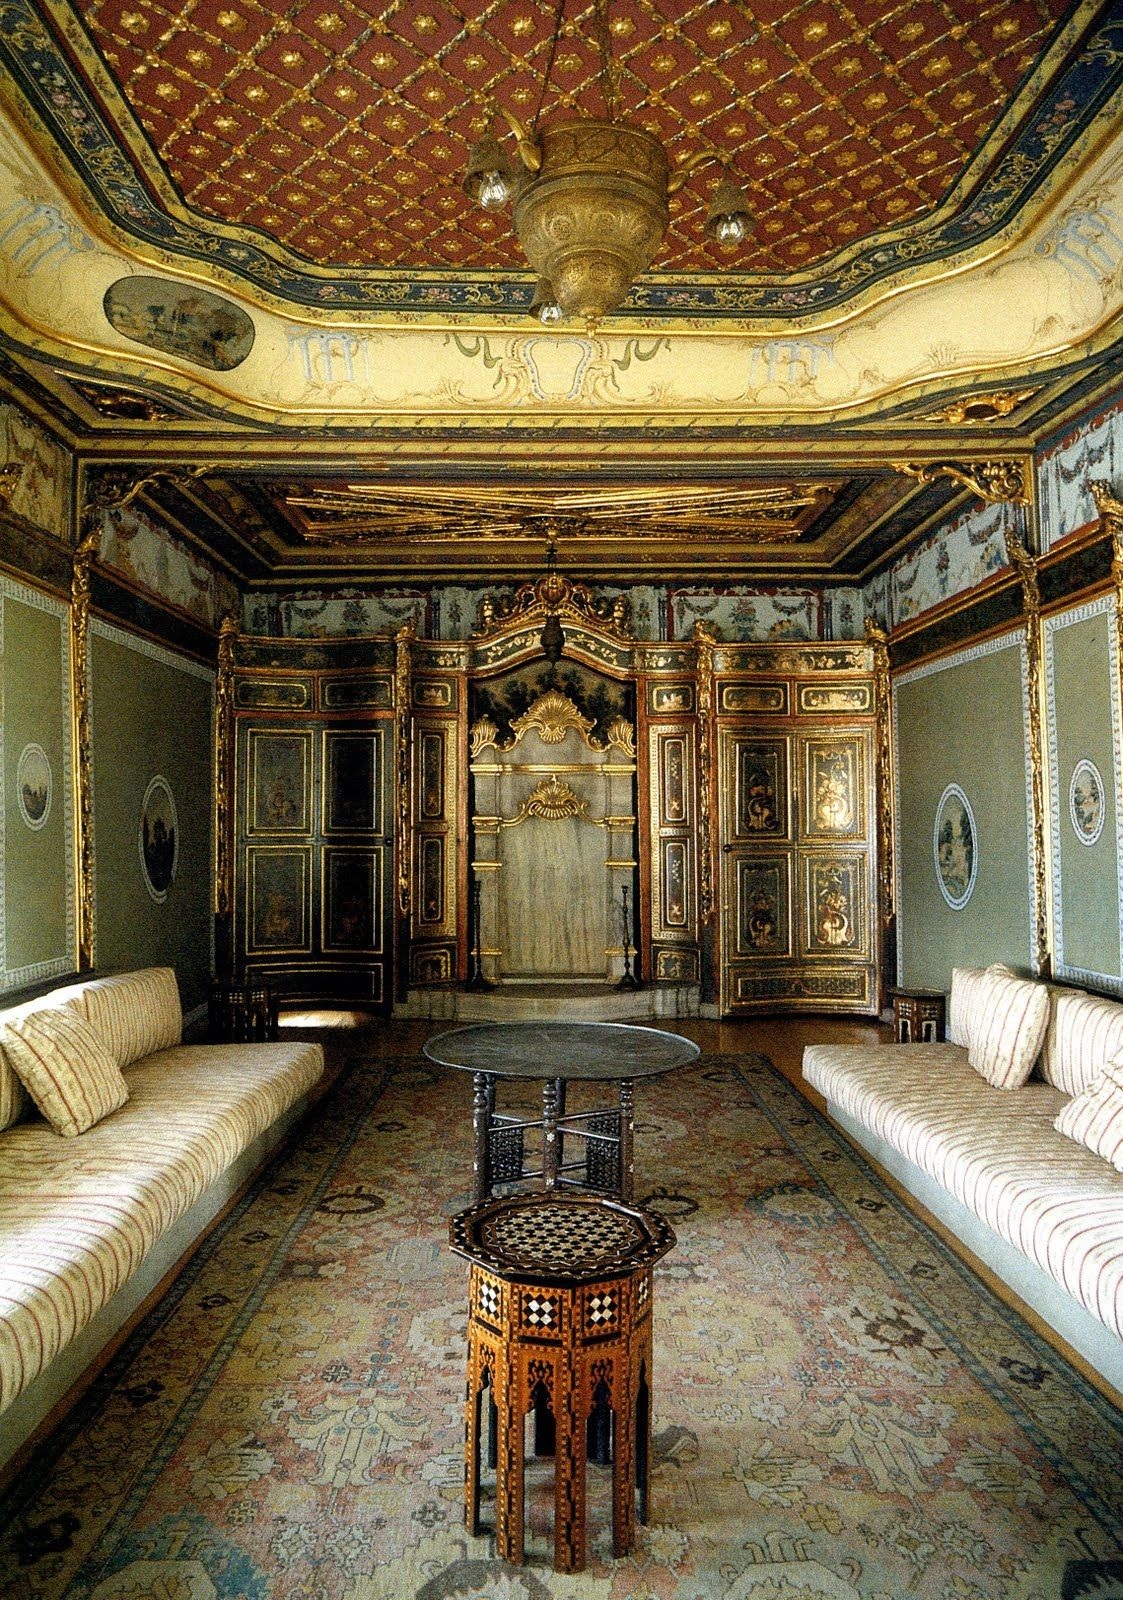 Turkish Style.. The Detail From Floor To Ceiling Is Exquisite.